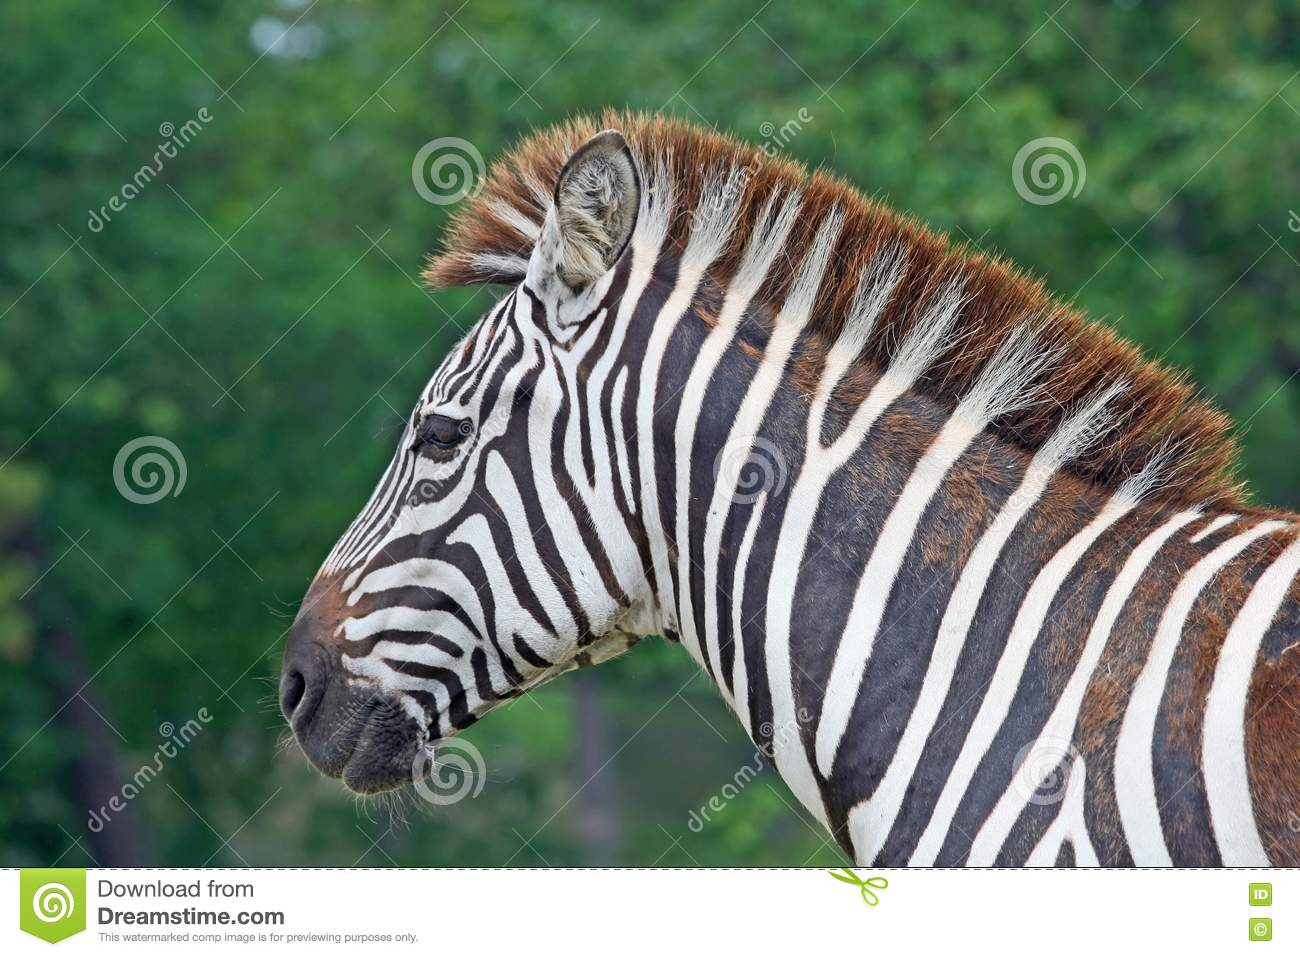 Zebra in a safari